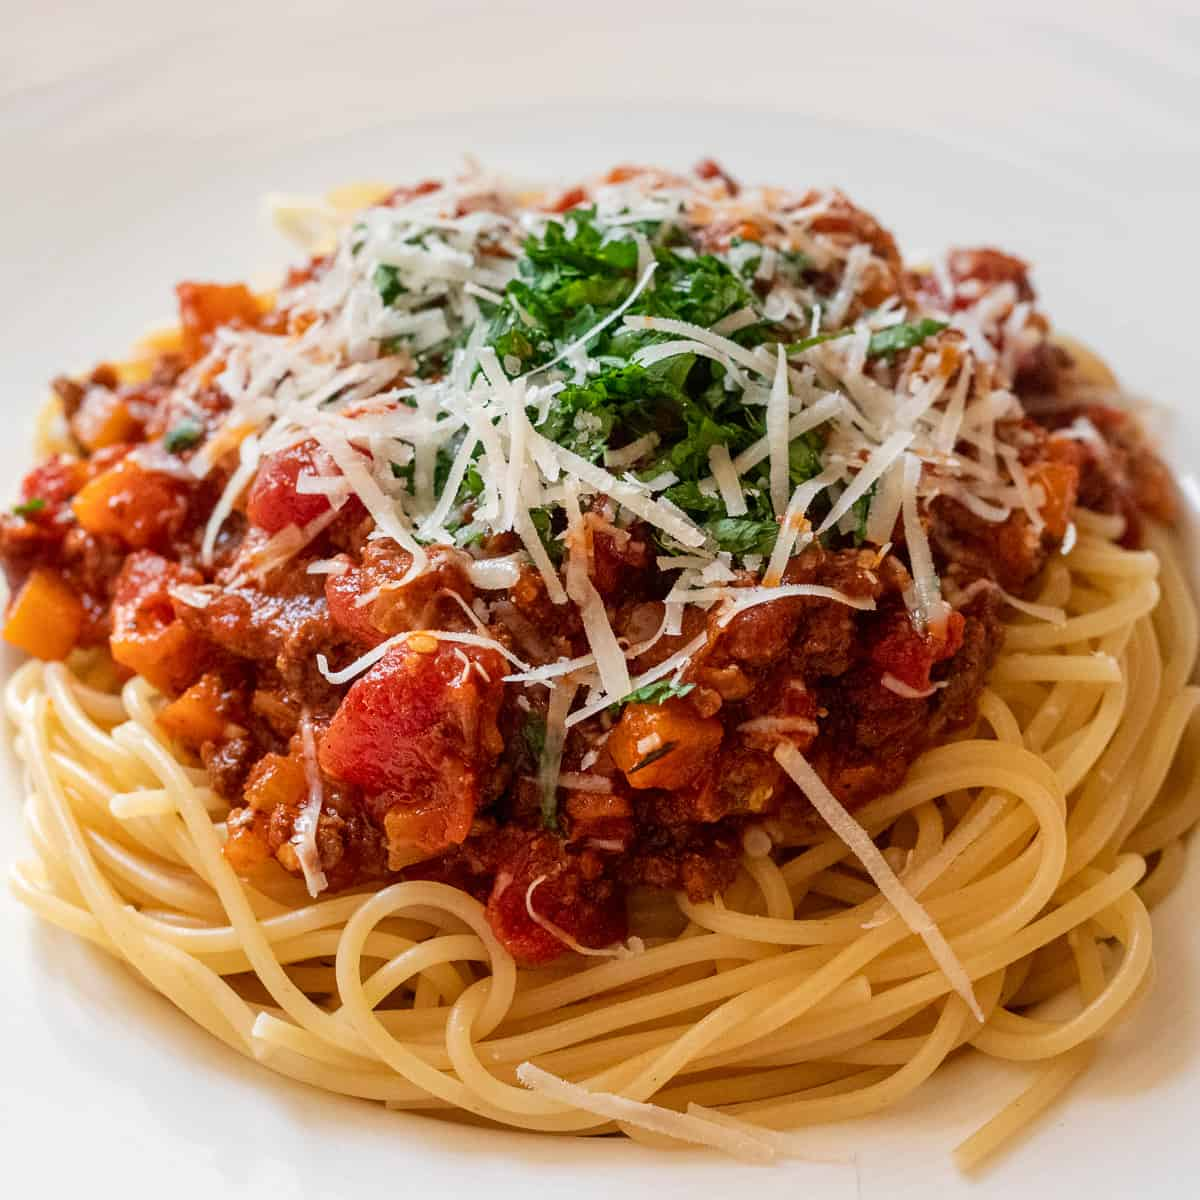 Classic bolognese sauce served with spaghetti